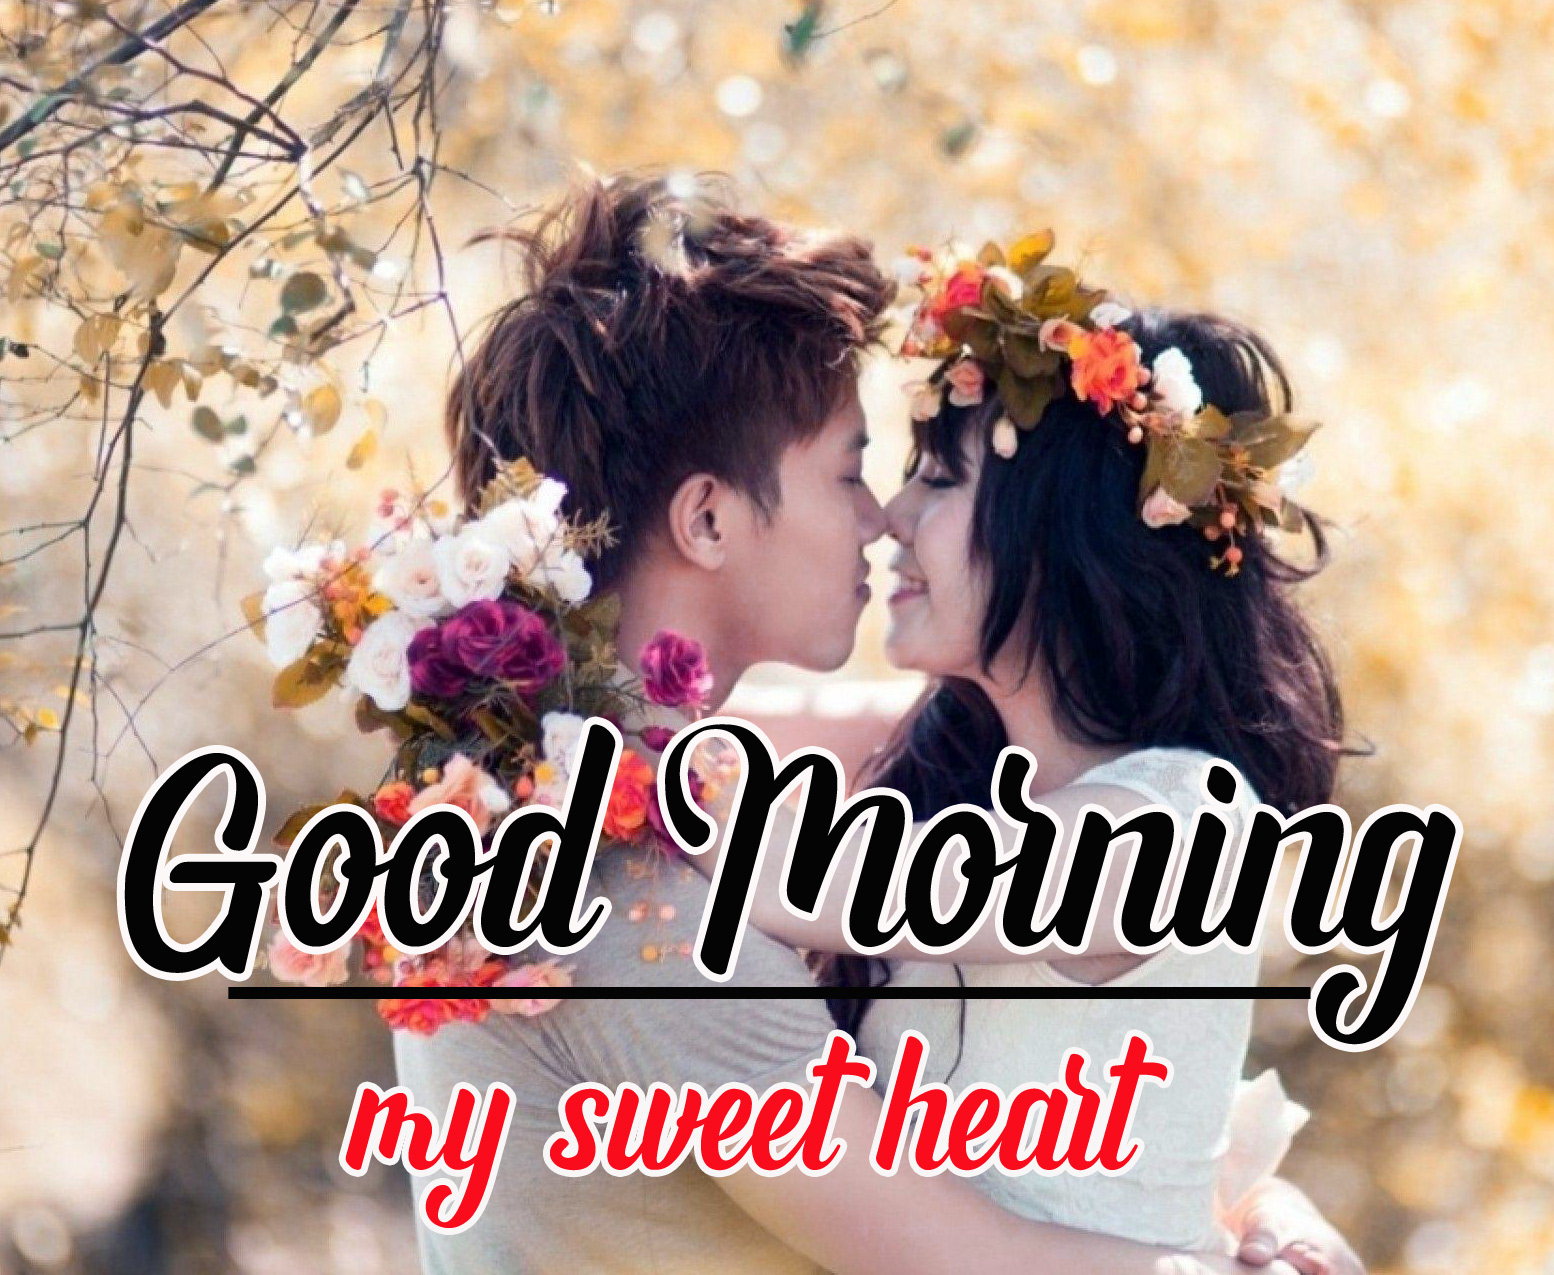 Free Good Morning Images HD Download